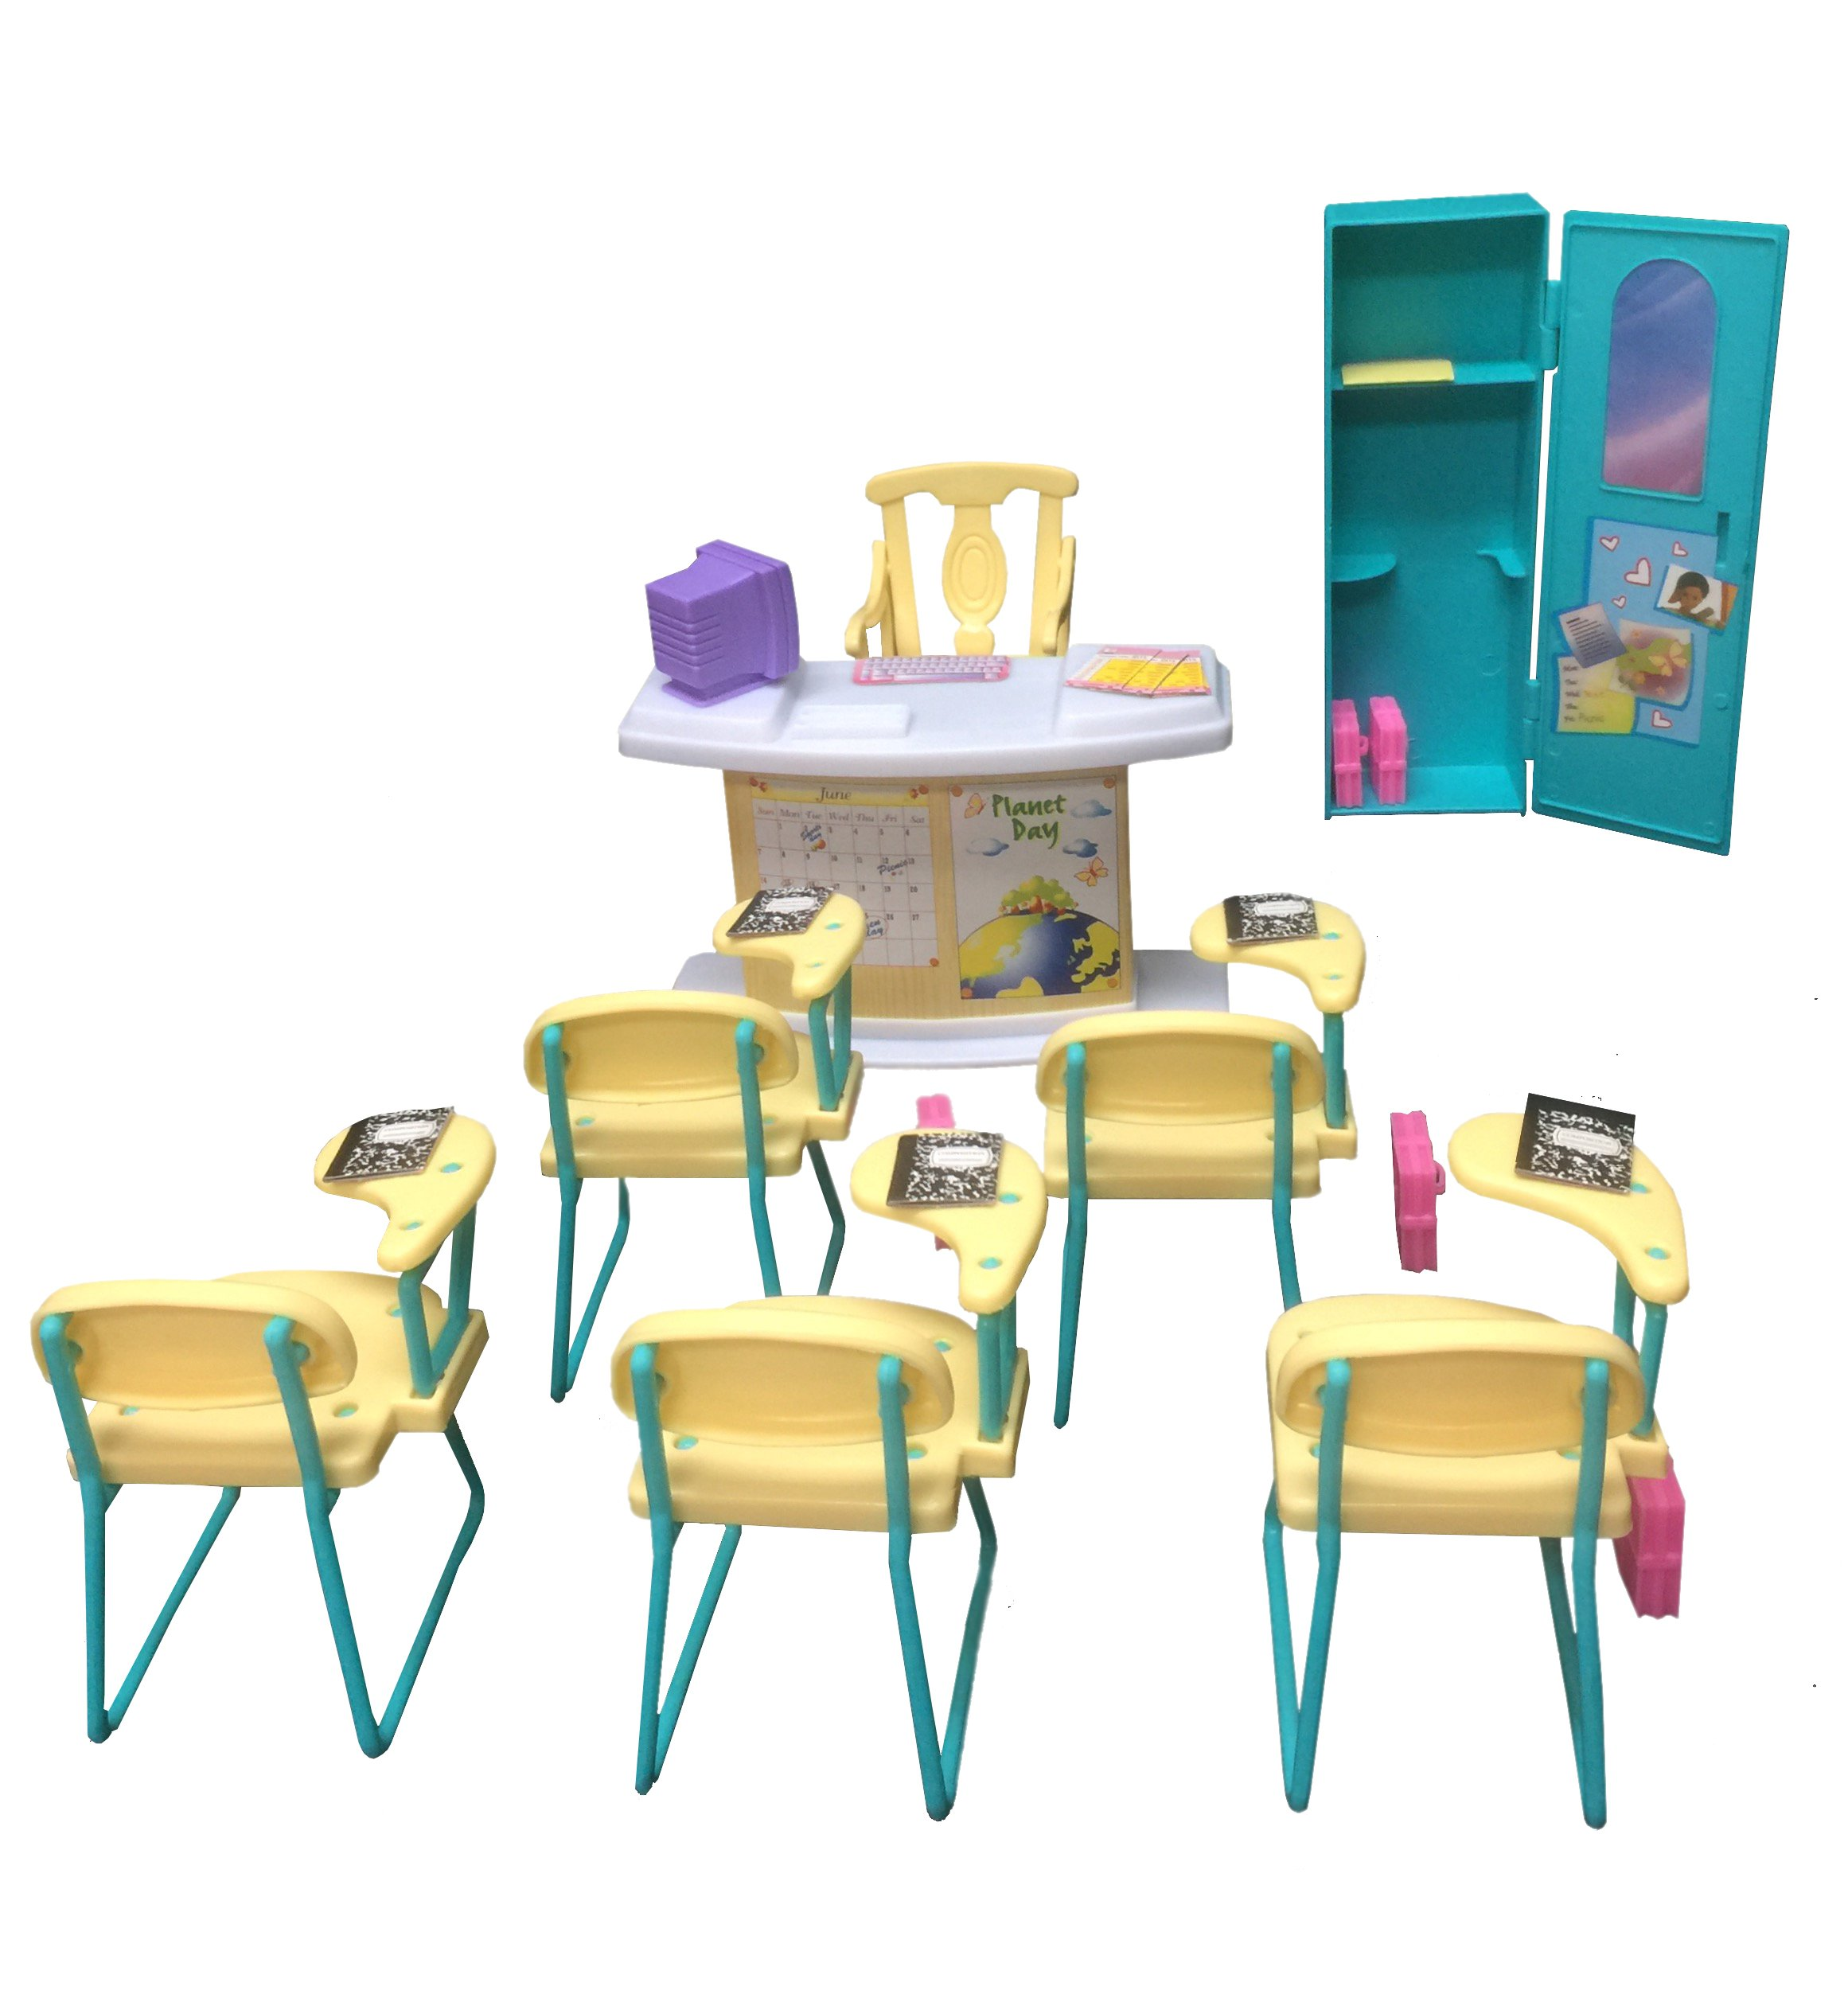 Classroom Play Set gloria Dollhouse Furniture